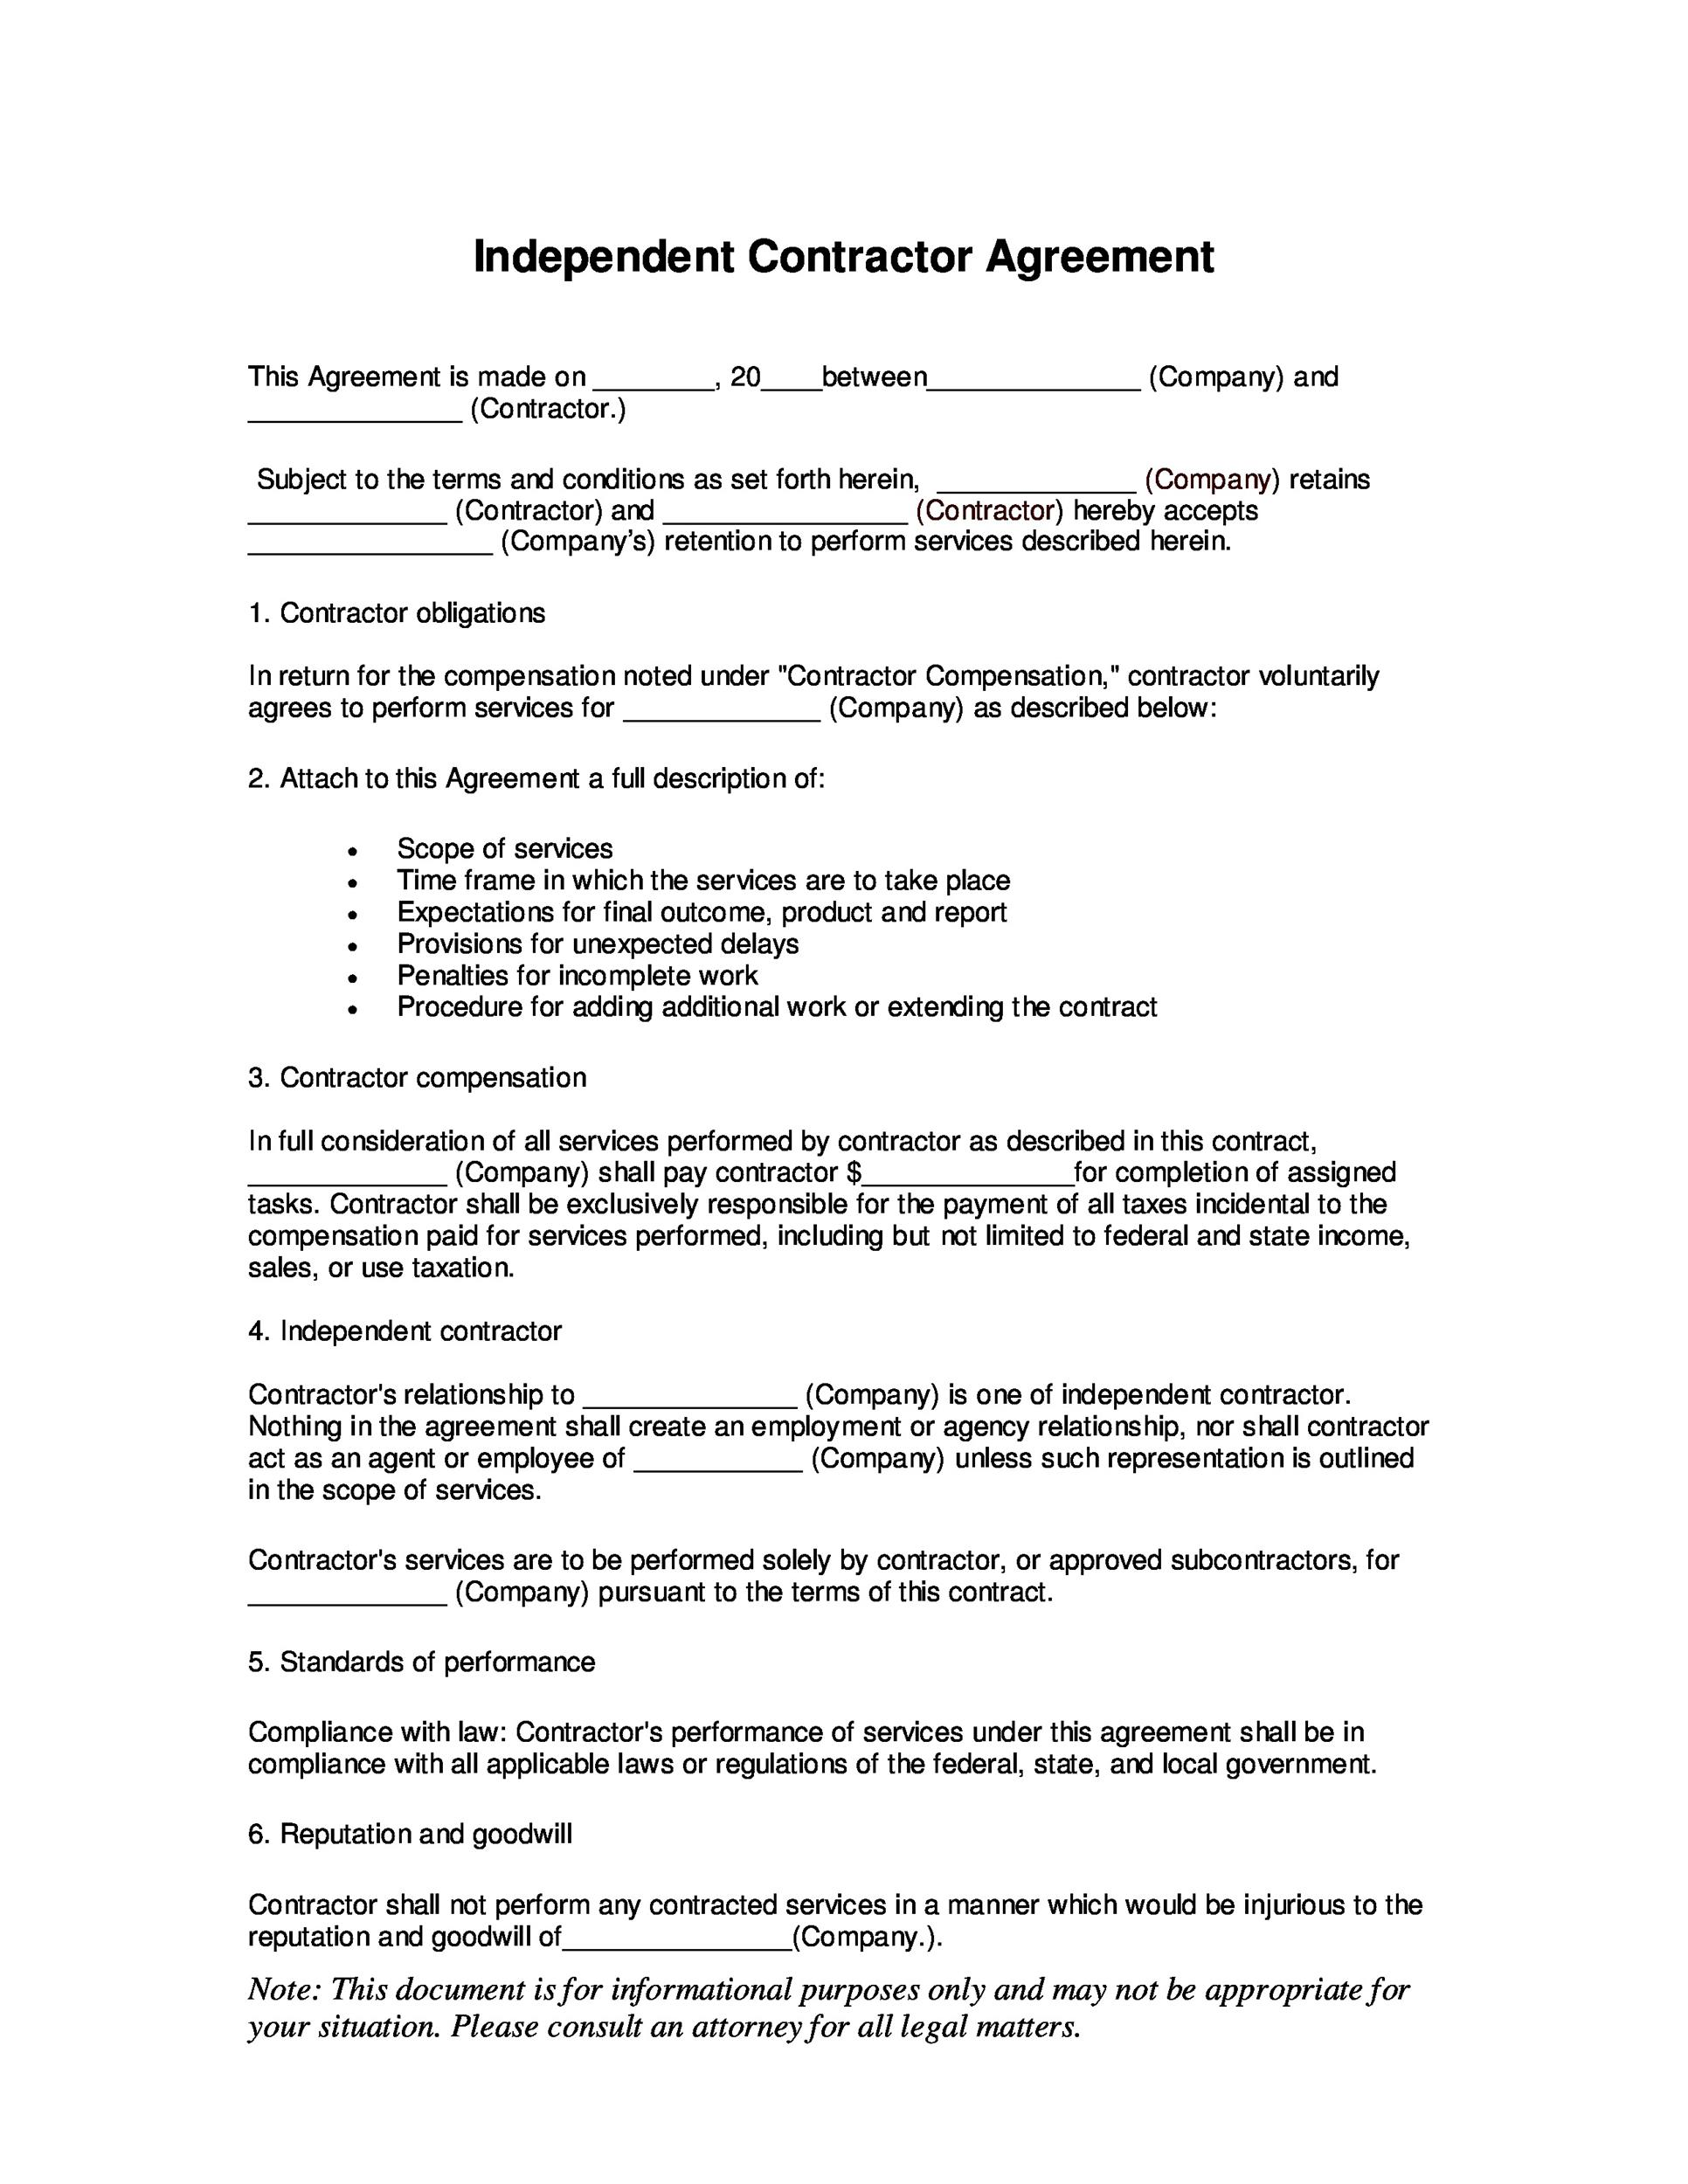 Free independent contractor agreement 36